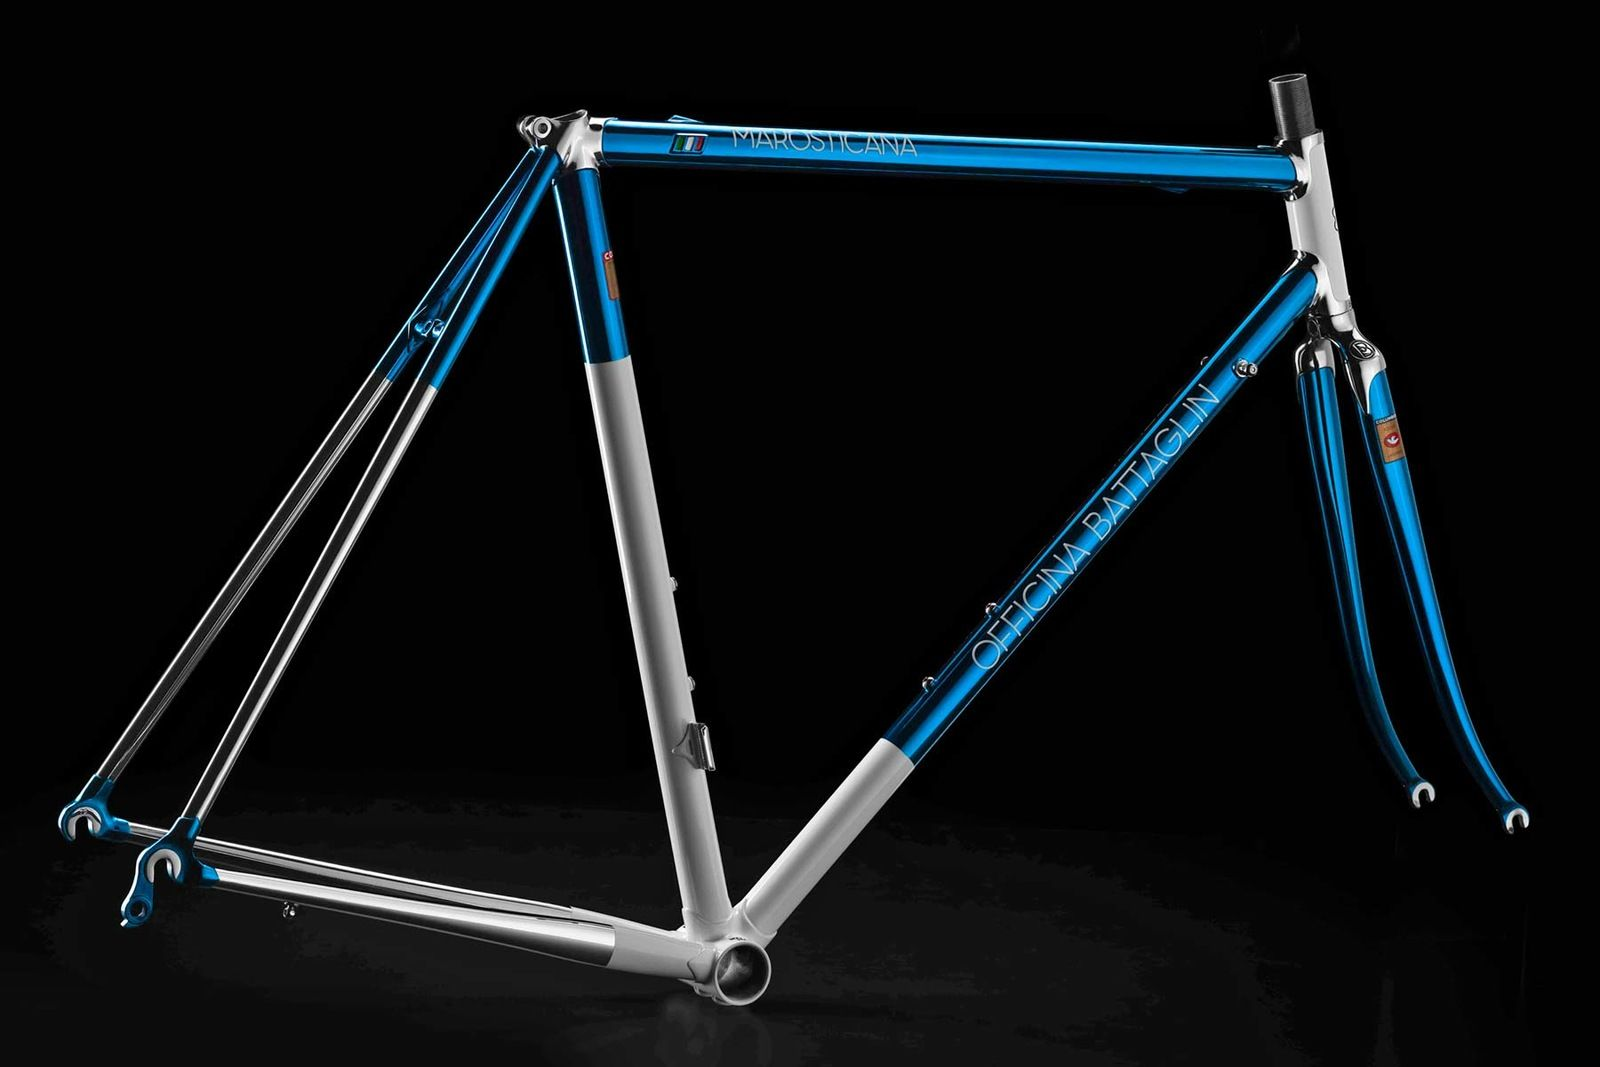 Officina-Battaglin-Marosticana-SLX-road-bike-frame_limited-edition-Italian-lugged-steel-chrome-cromovelato-road-frame-Columbus-SLX-tubing_frameset.jpg